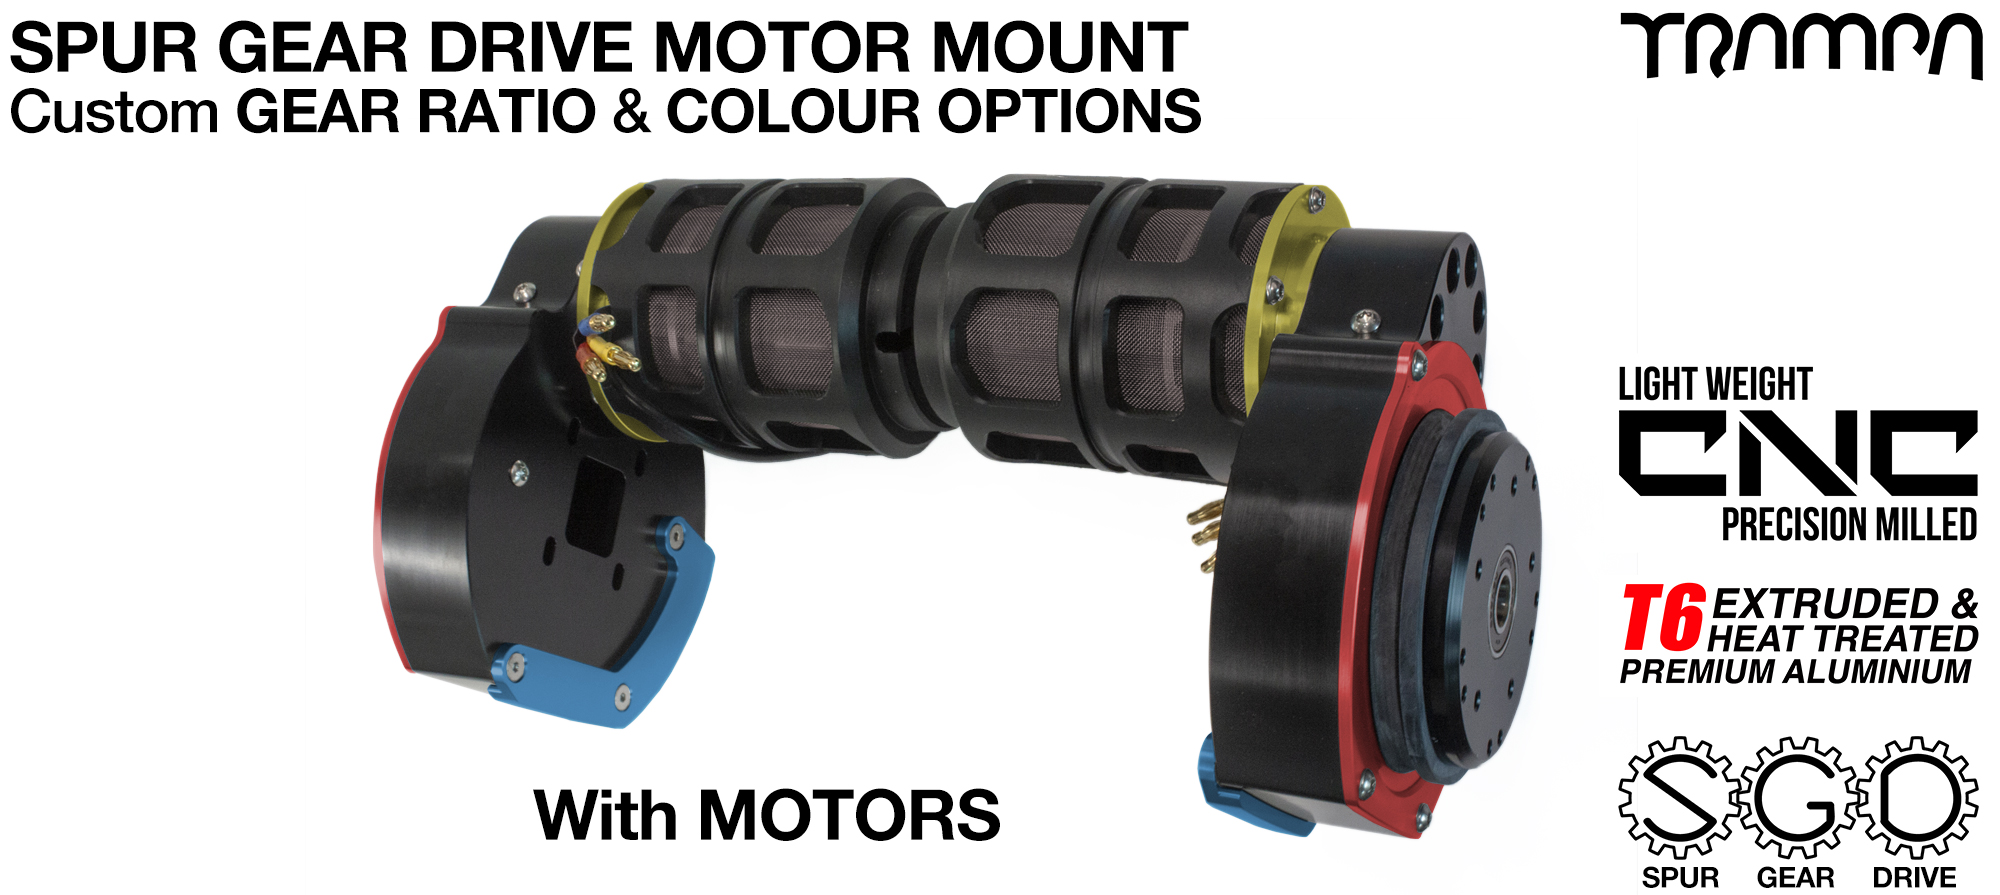 Mountainboard EXTERNAL Spur Gear Drive TWIN Motor Mounts with Motors